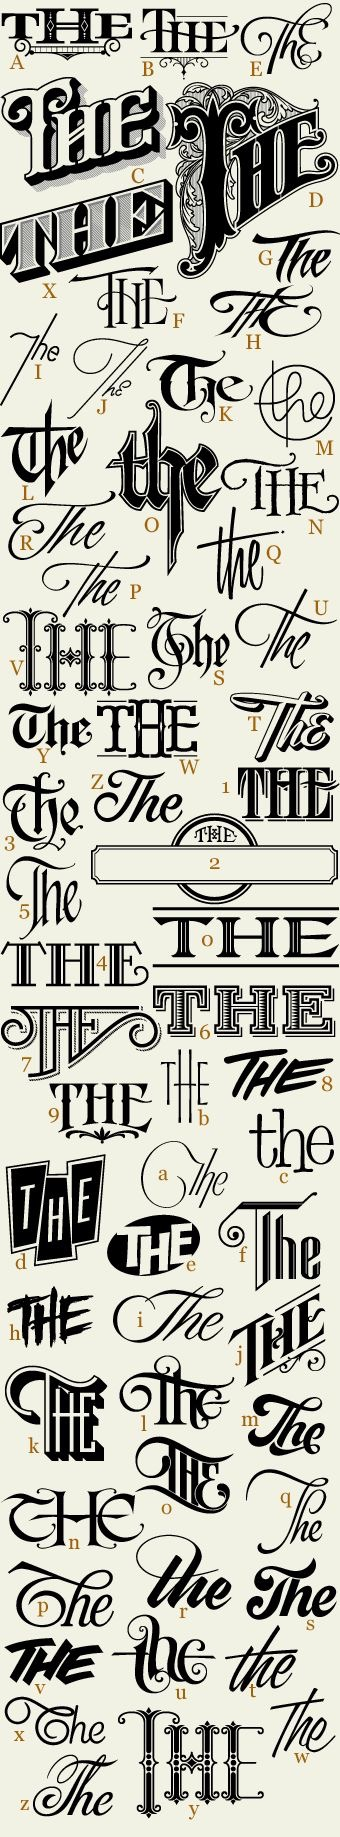 Letterhead Fonts LHF 62 Thes Variations Of The By Rebecca Grant